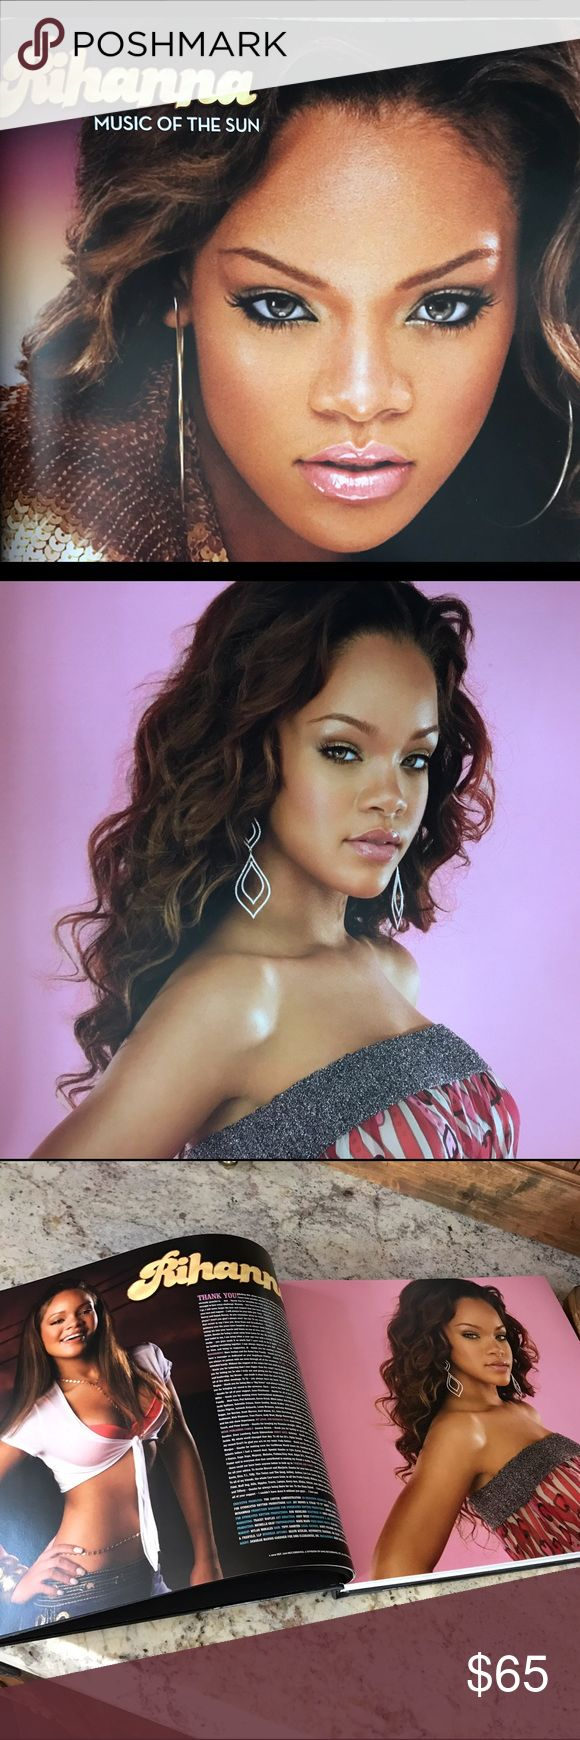 Rihanna Coffee Table Book Leather Bound Hardcover, Over 200 pages of RHIANNA- her wardrobe,  fashion, style, comments on songs, photos rarely seen, Rhianna shares facts to learn and love💞 Other